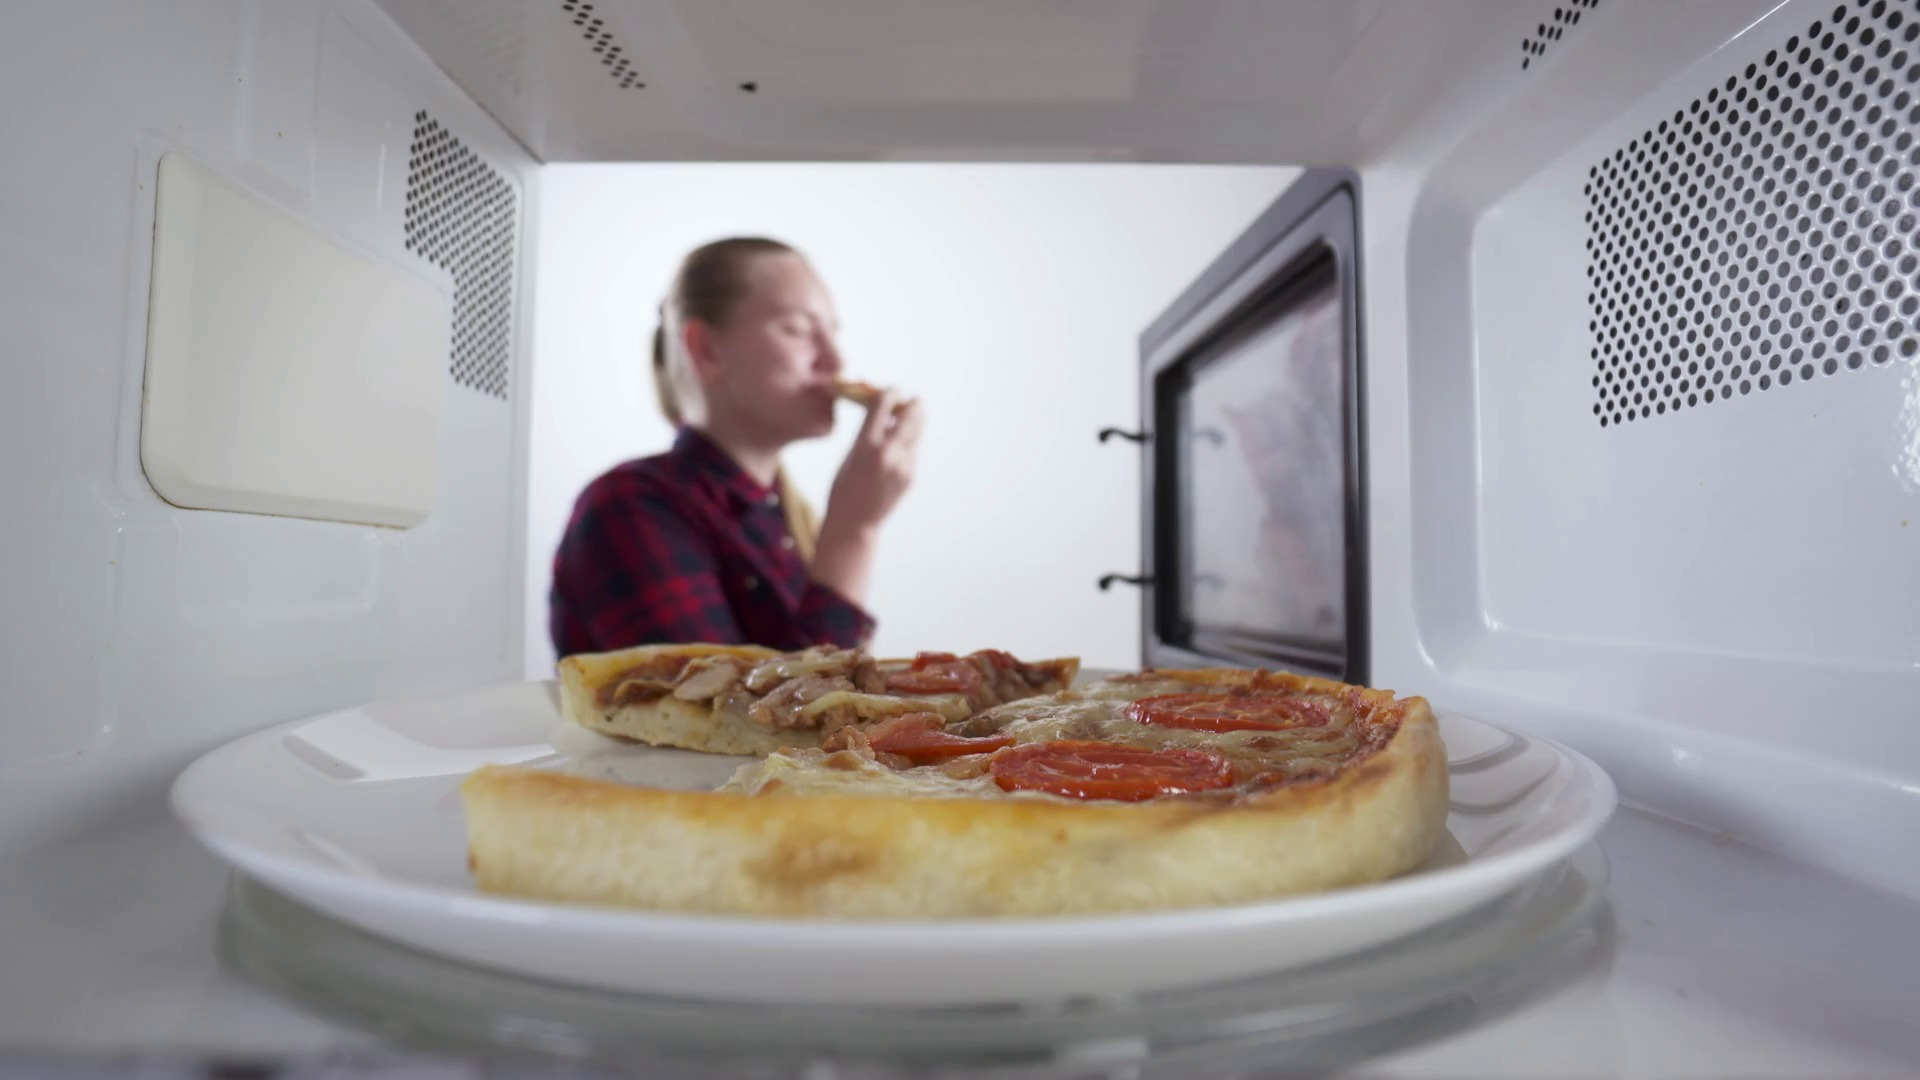 'Ultraprocessed foods' cause heart issues and premature deaths